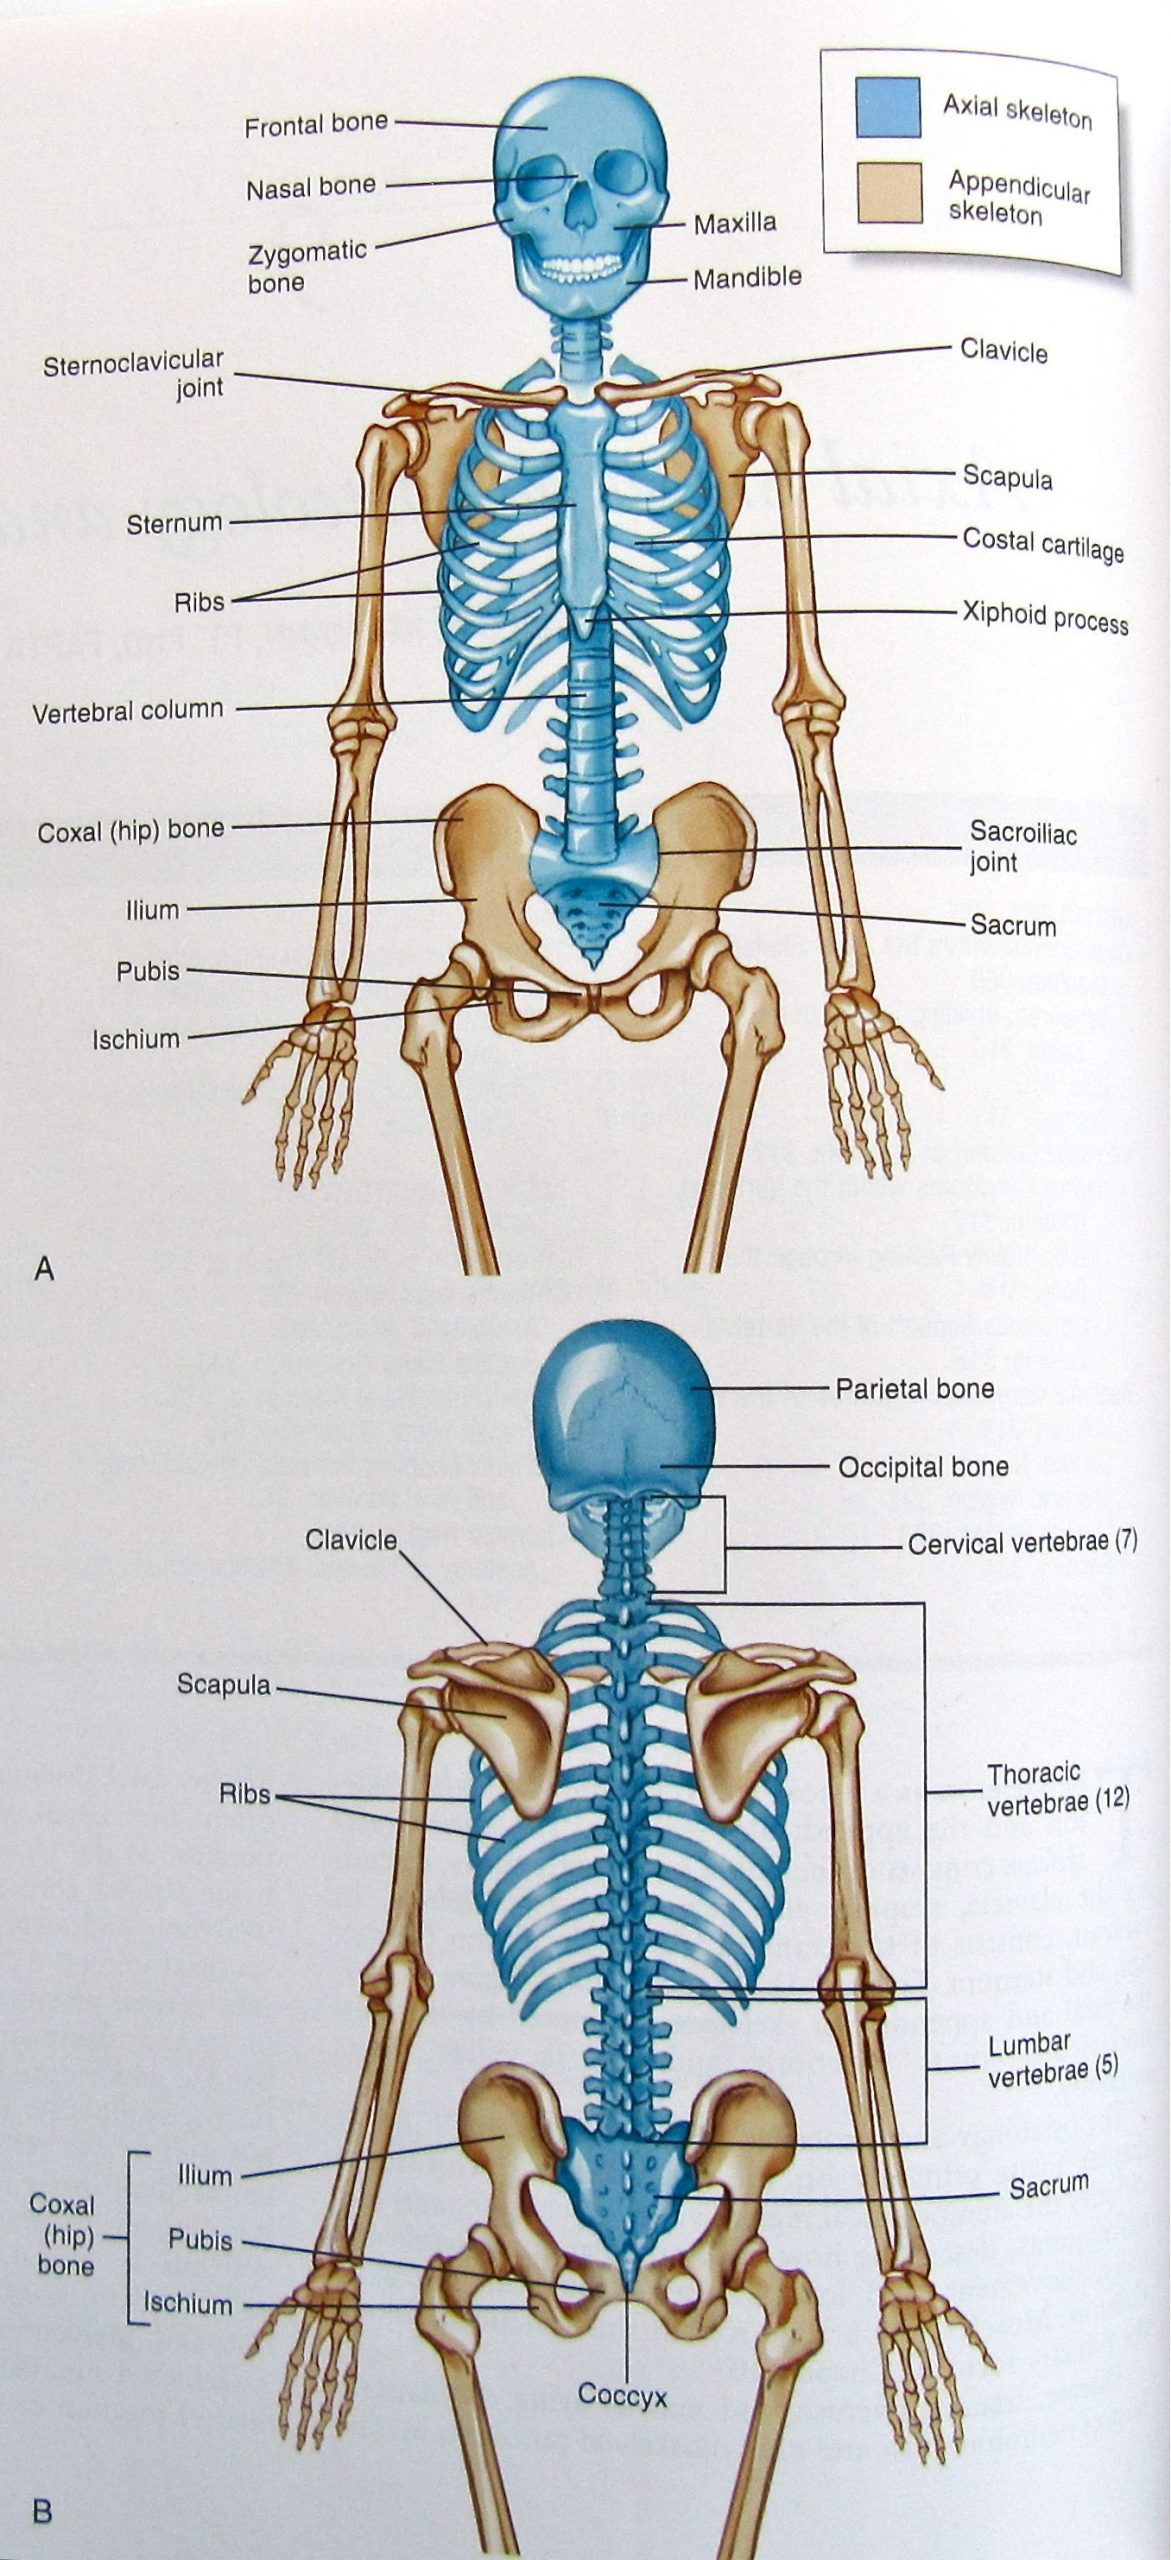 Appendicular Skeleton Worksheet Answers Axial and Appendicular Skeleton Dpress